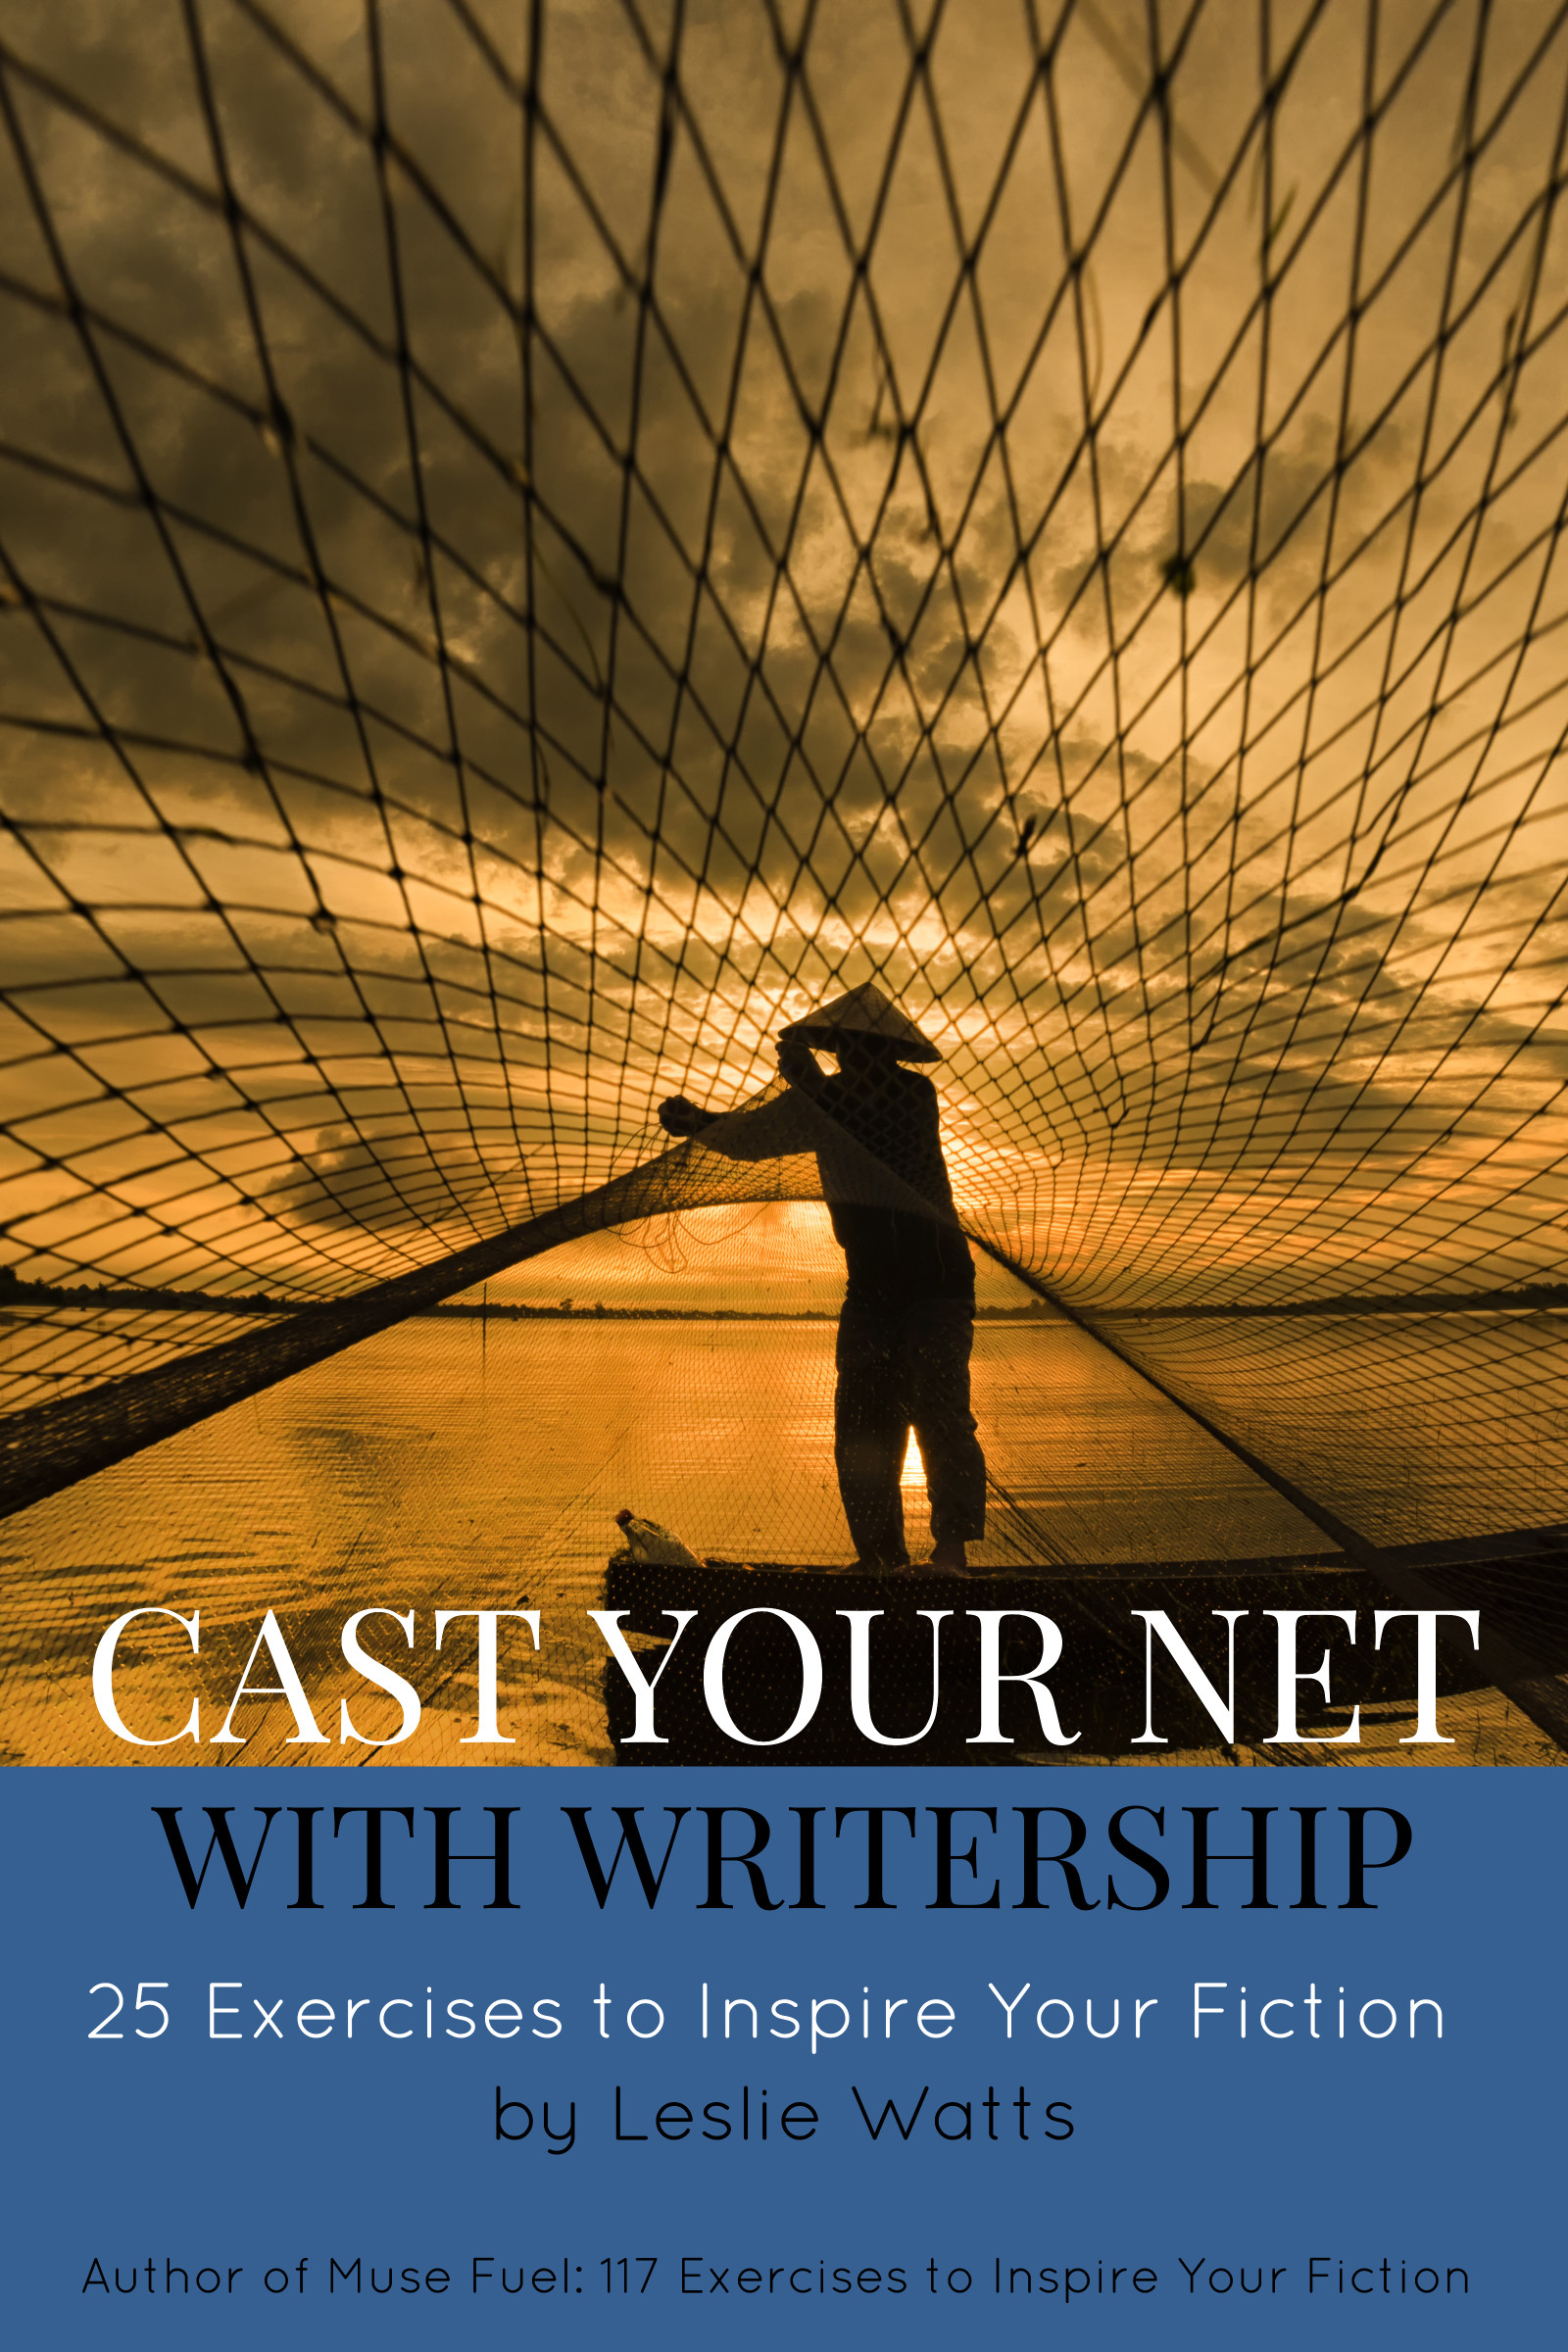 Cast Your Net with Writership: 25 Exercises to Inspire Your Fiction by Leslie Watts